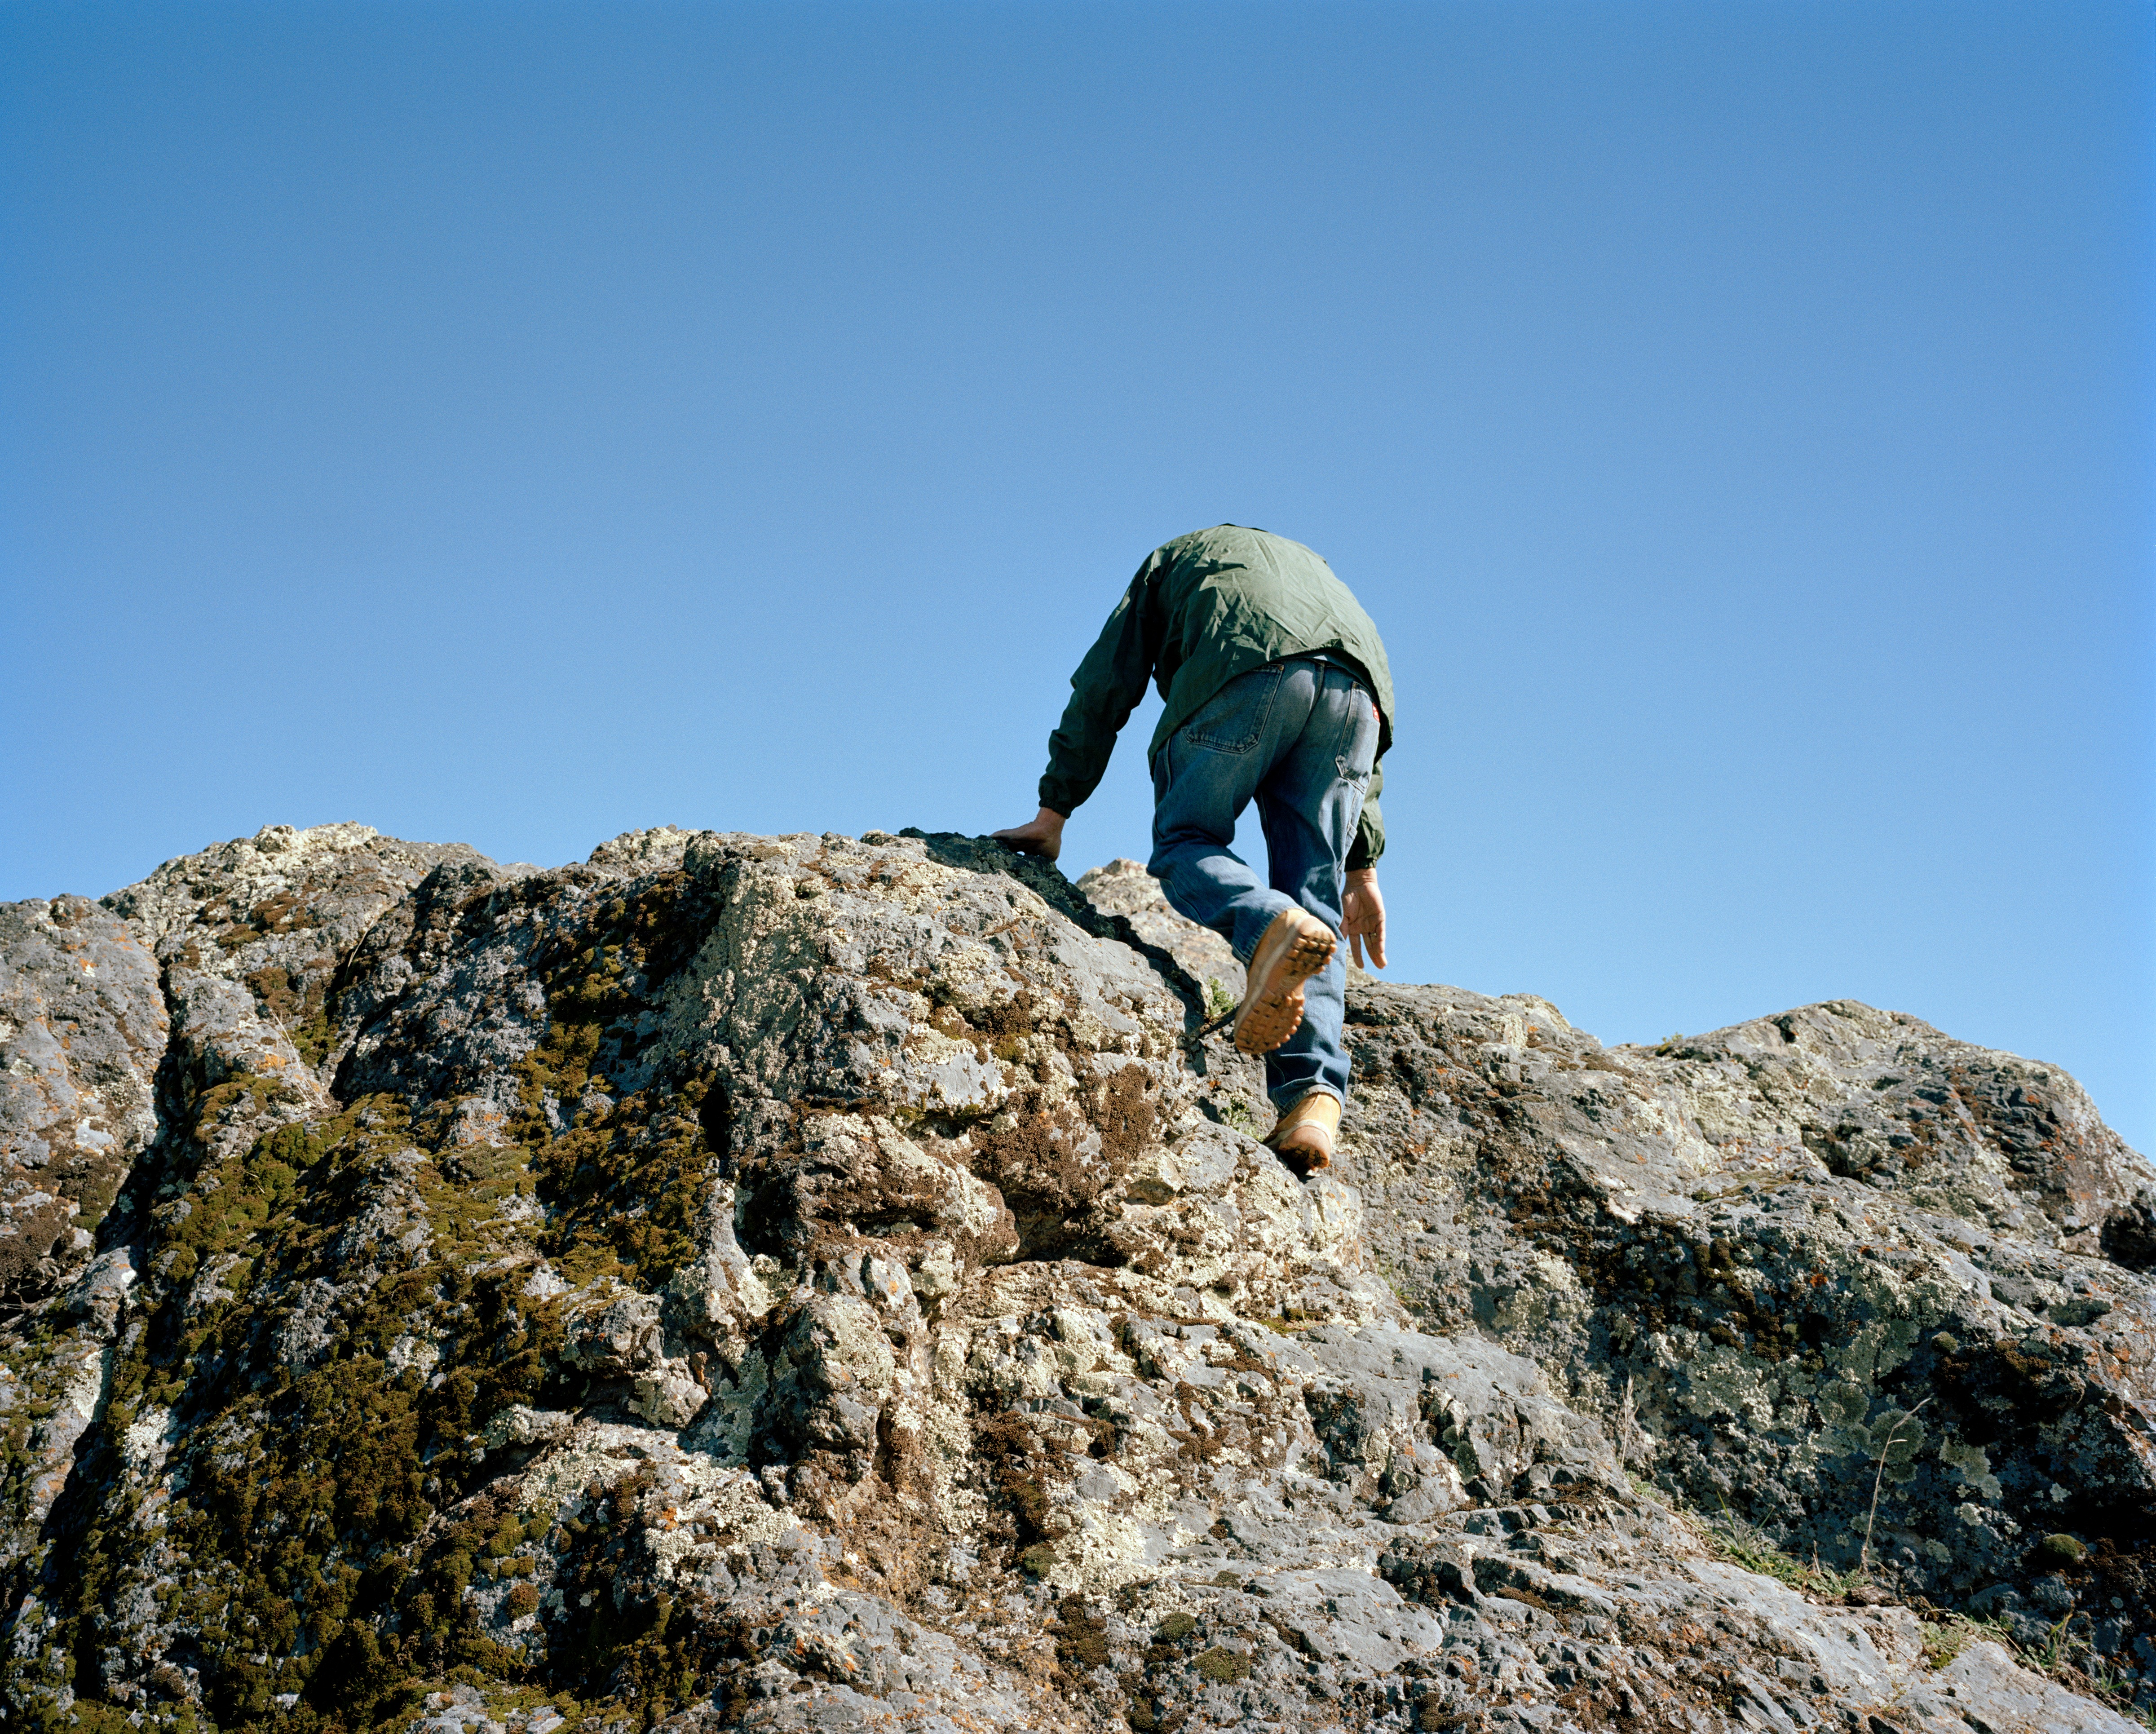 A photograph of a man climbing a rocky hill. The viewpoint is from behind and the sky is clear and blue.